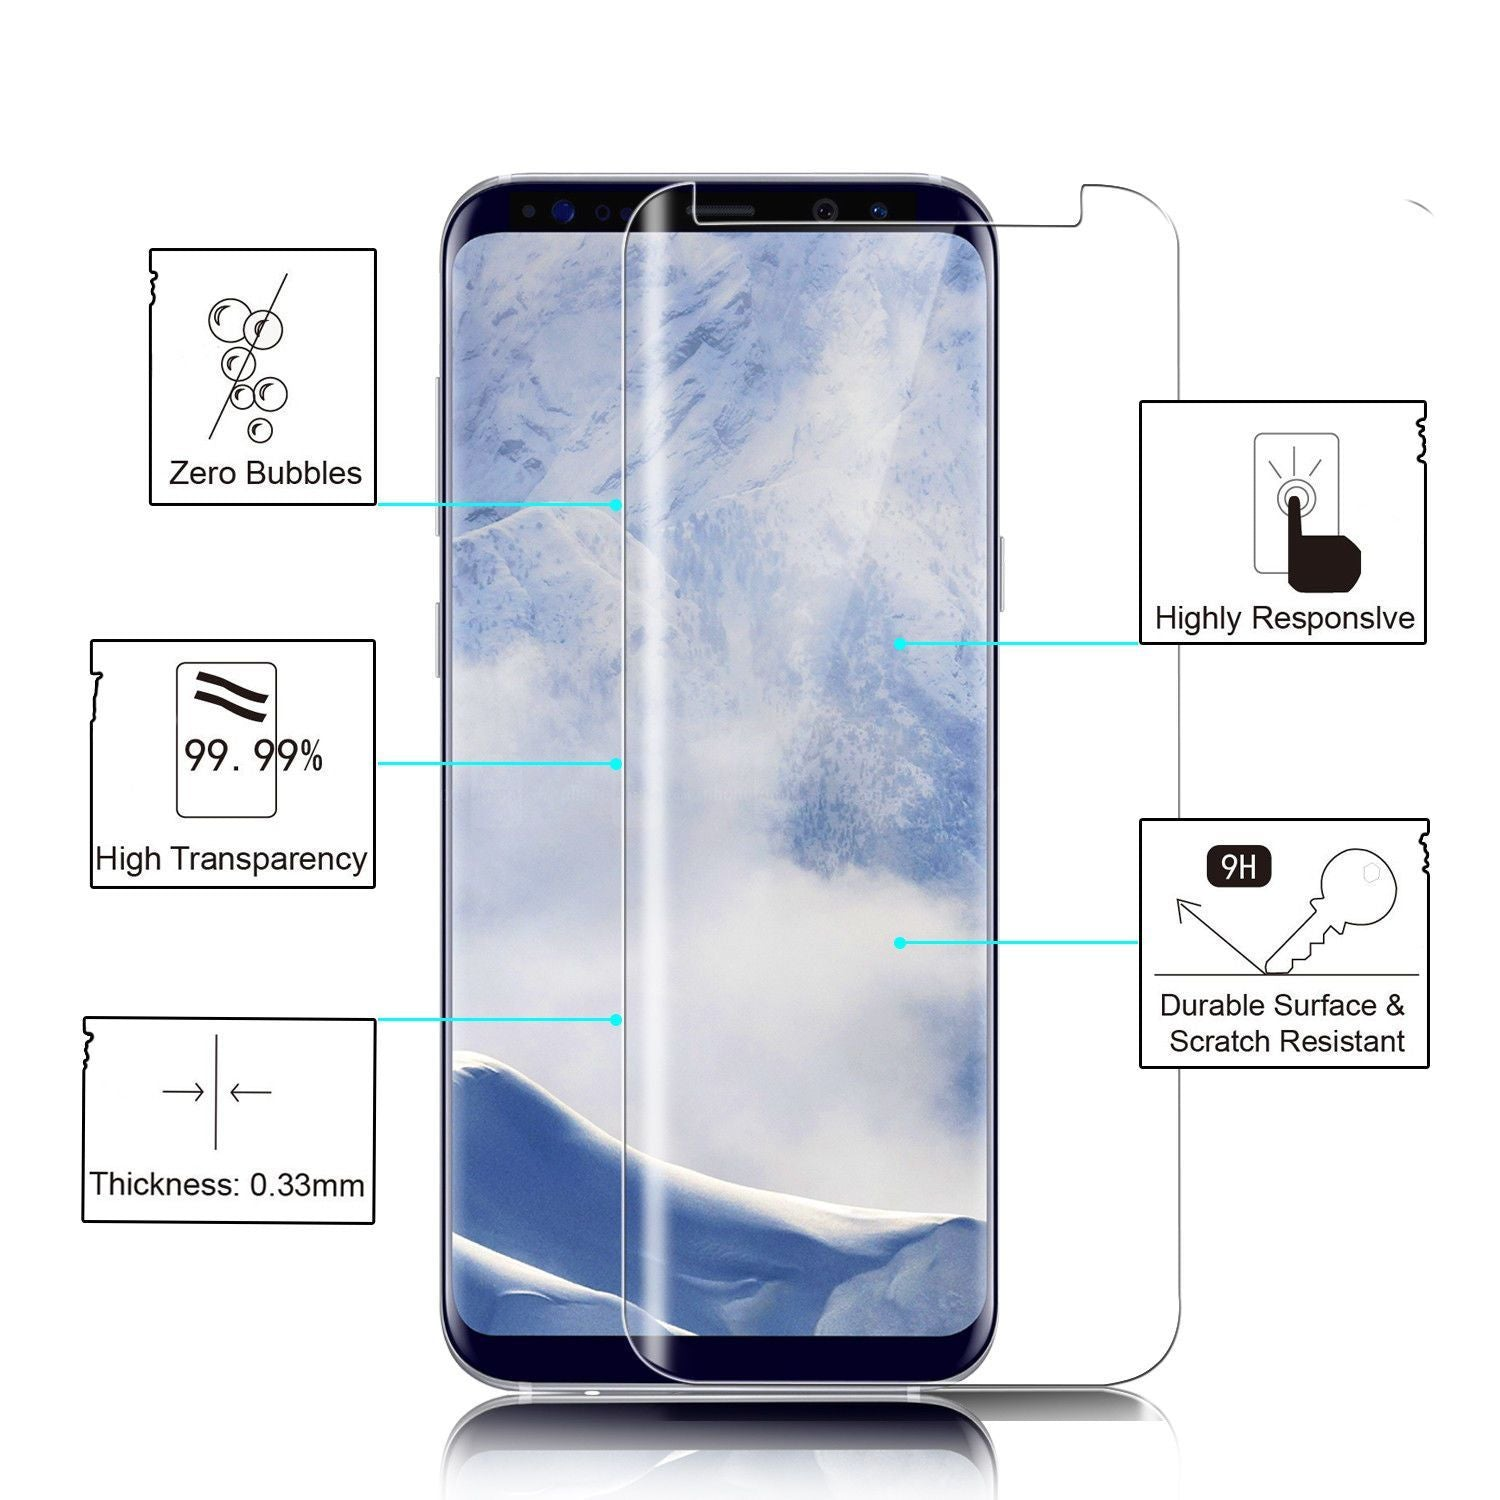 Buy 1 Get 1 FREE: Galaxy S9 Lens Case Plus Mirror Shine Cover